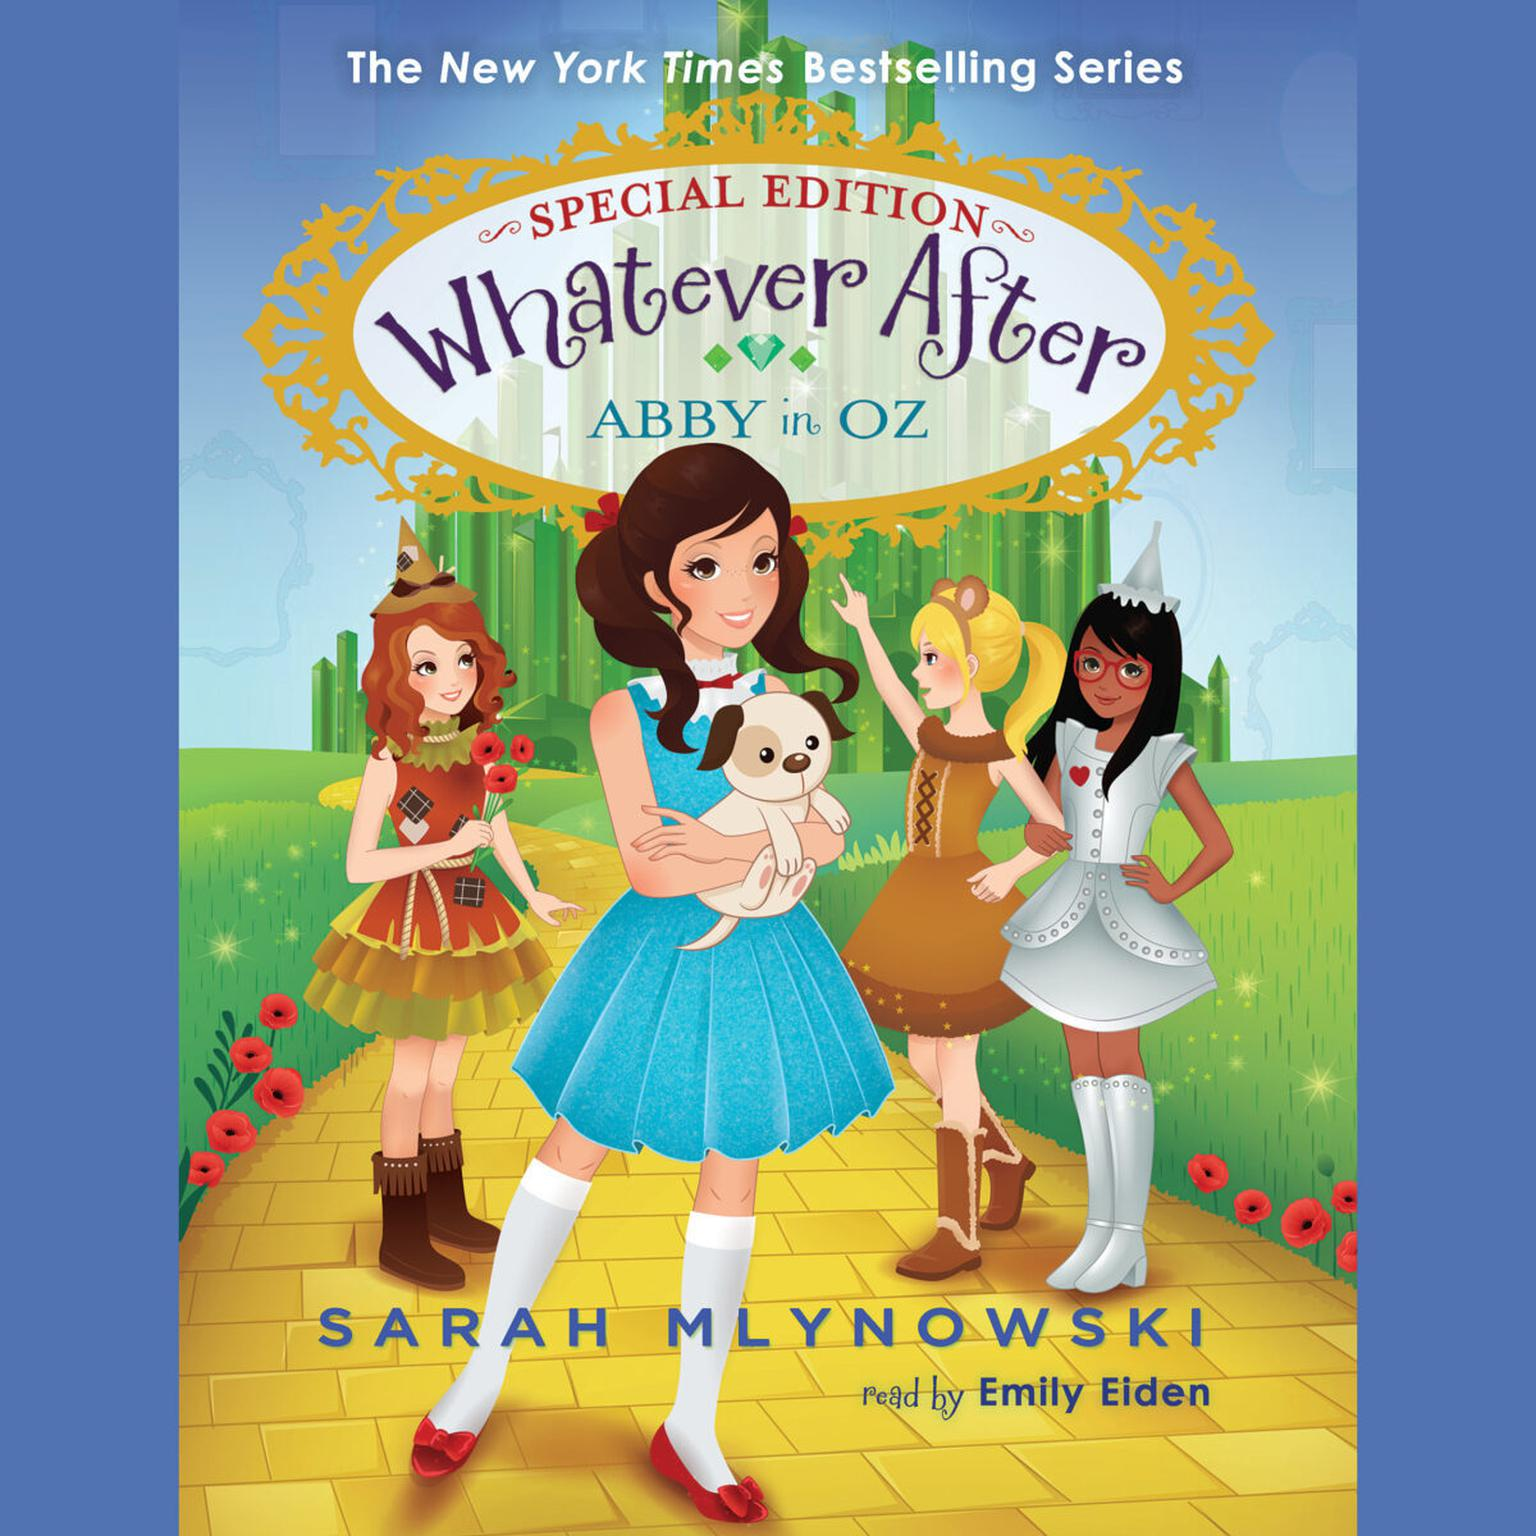 Abby in Oz (Whatever After Special Edition #2) (Digital Audio Download Edition) Audiobook, by Sarah Mlynowski